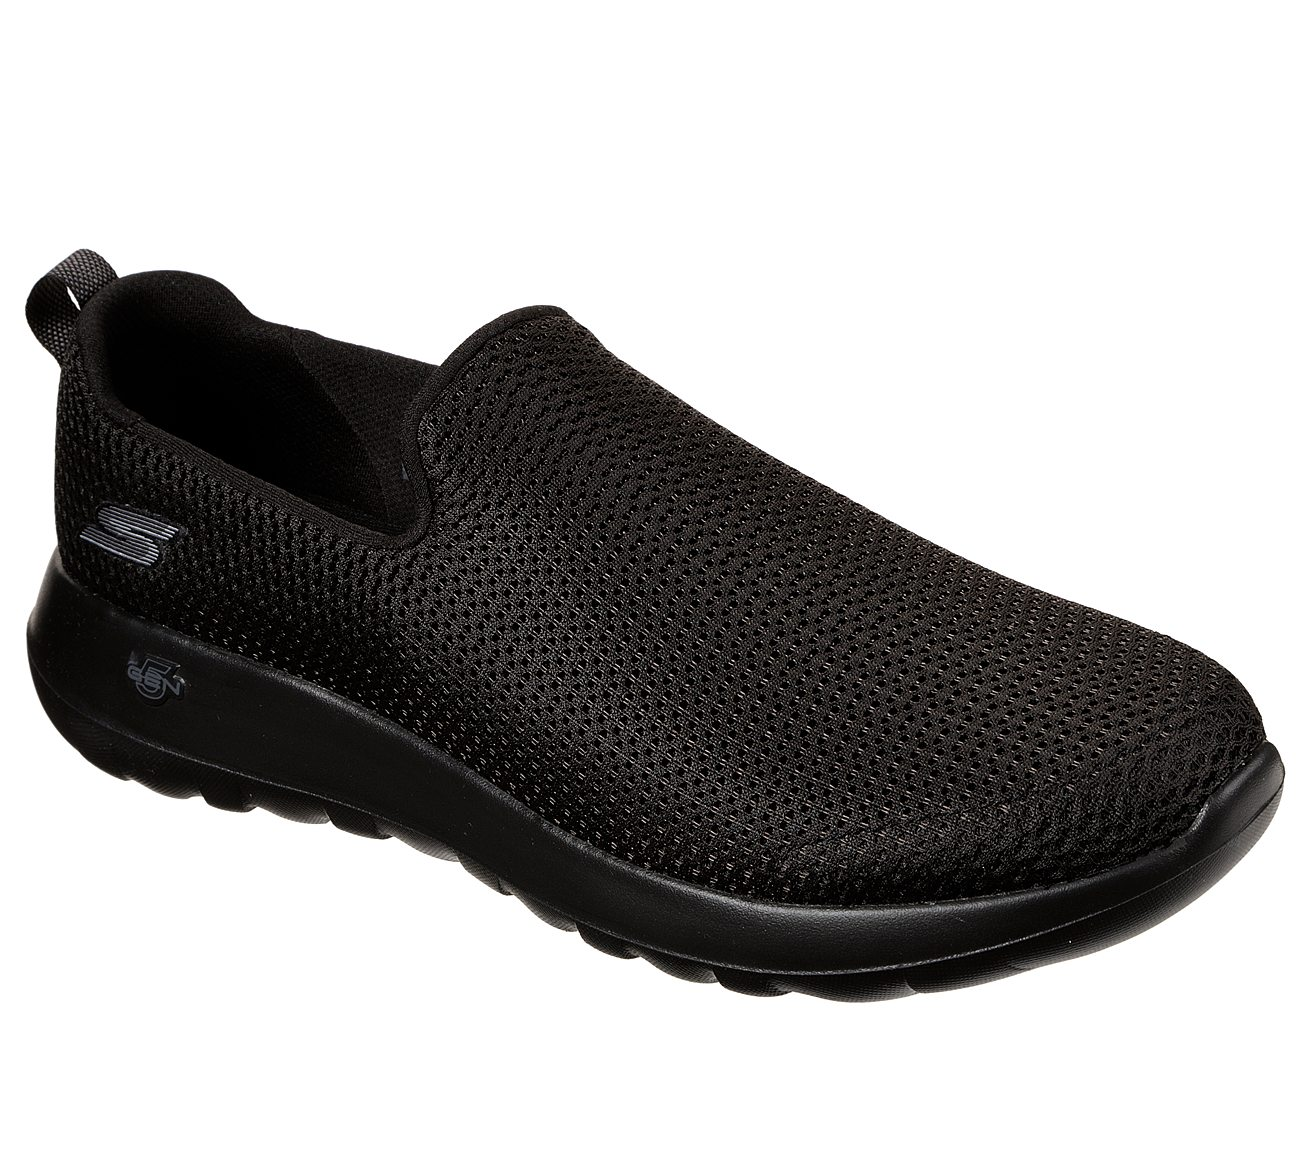 154303382f84 Buy SKECHERS Skechers GOwalk Max Skechers Performance Shoes only  60.00